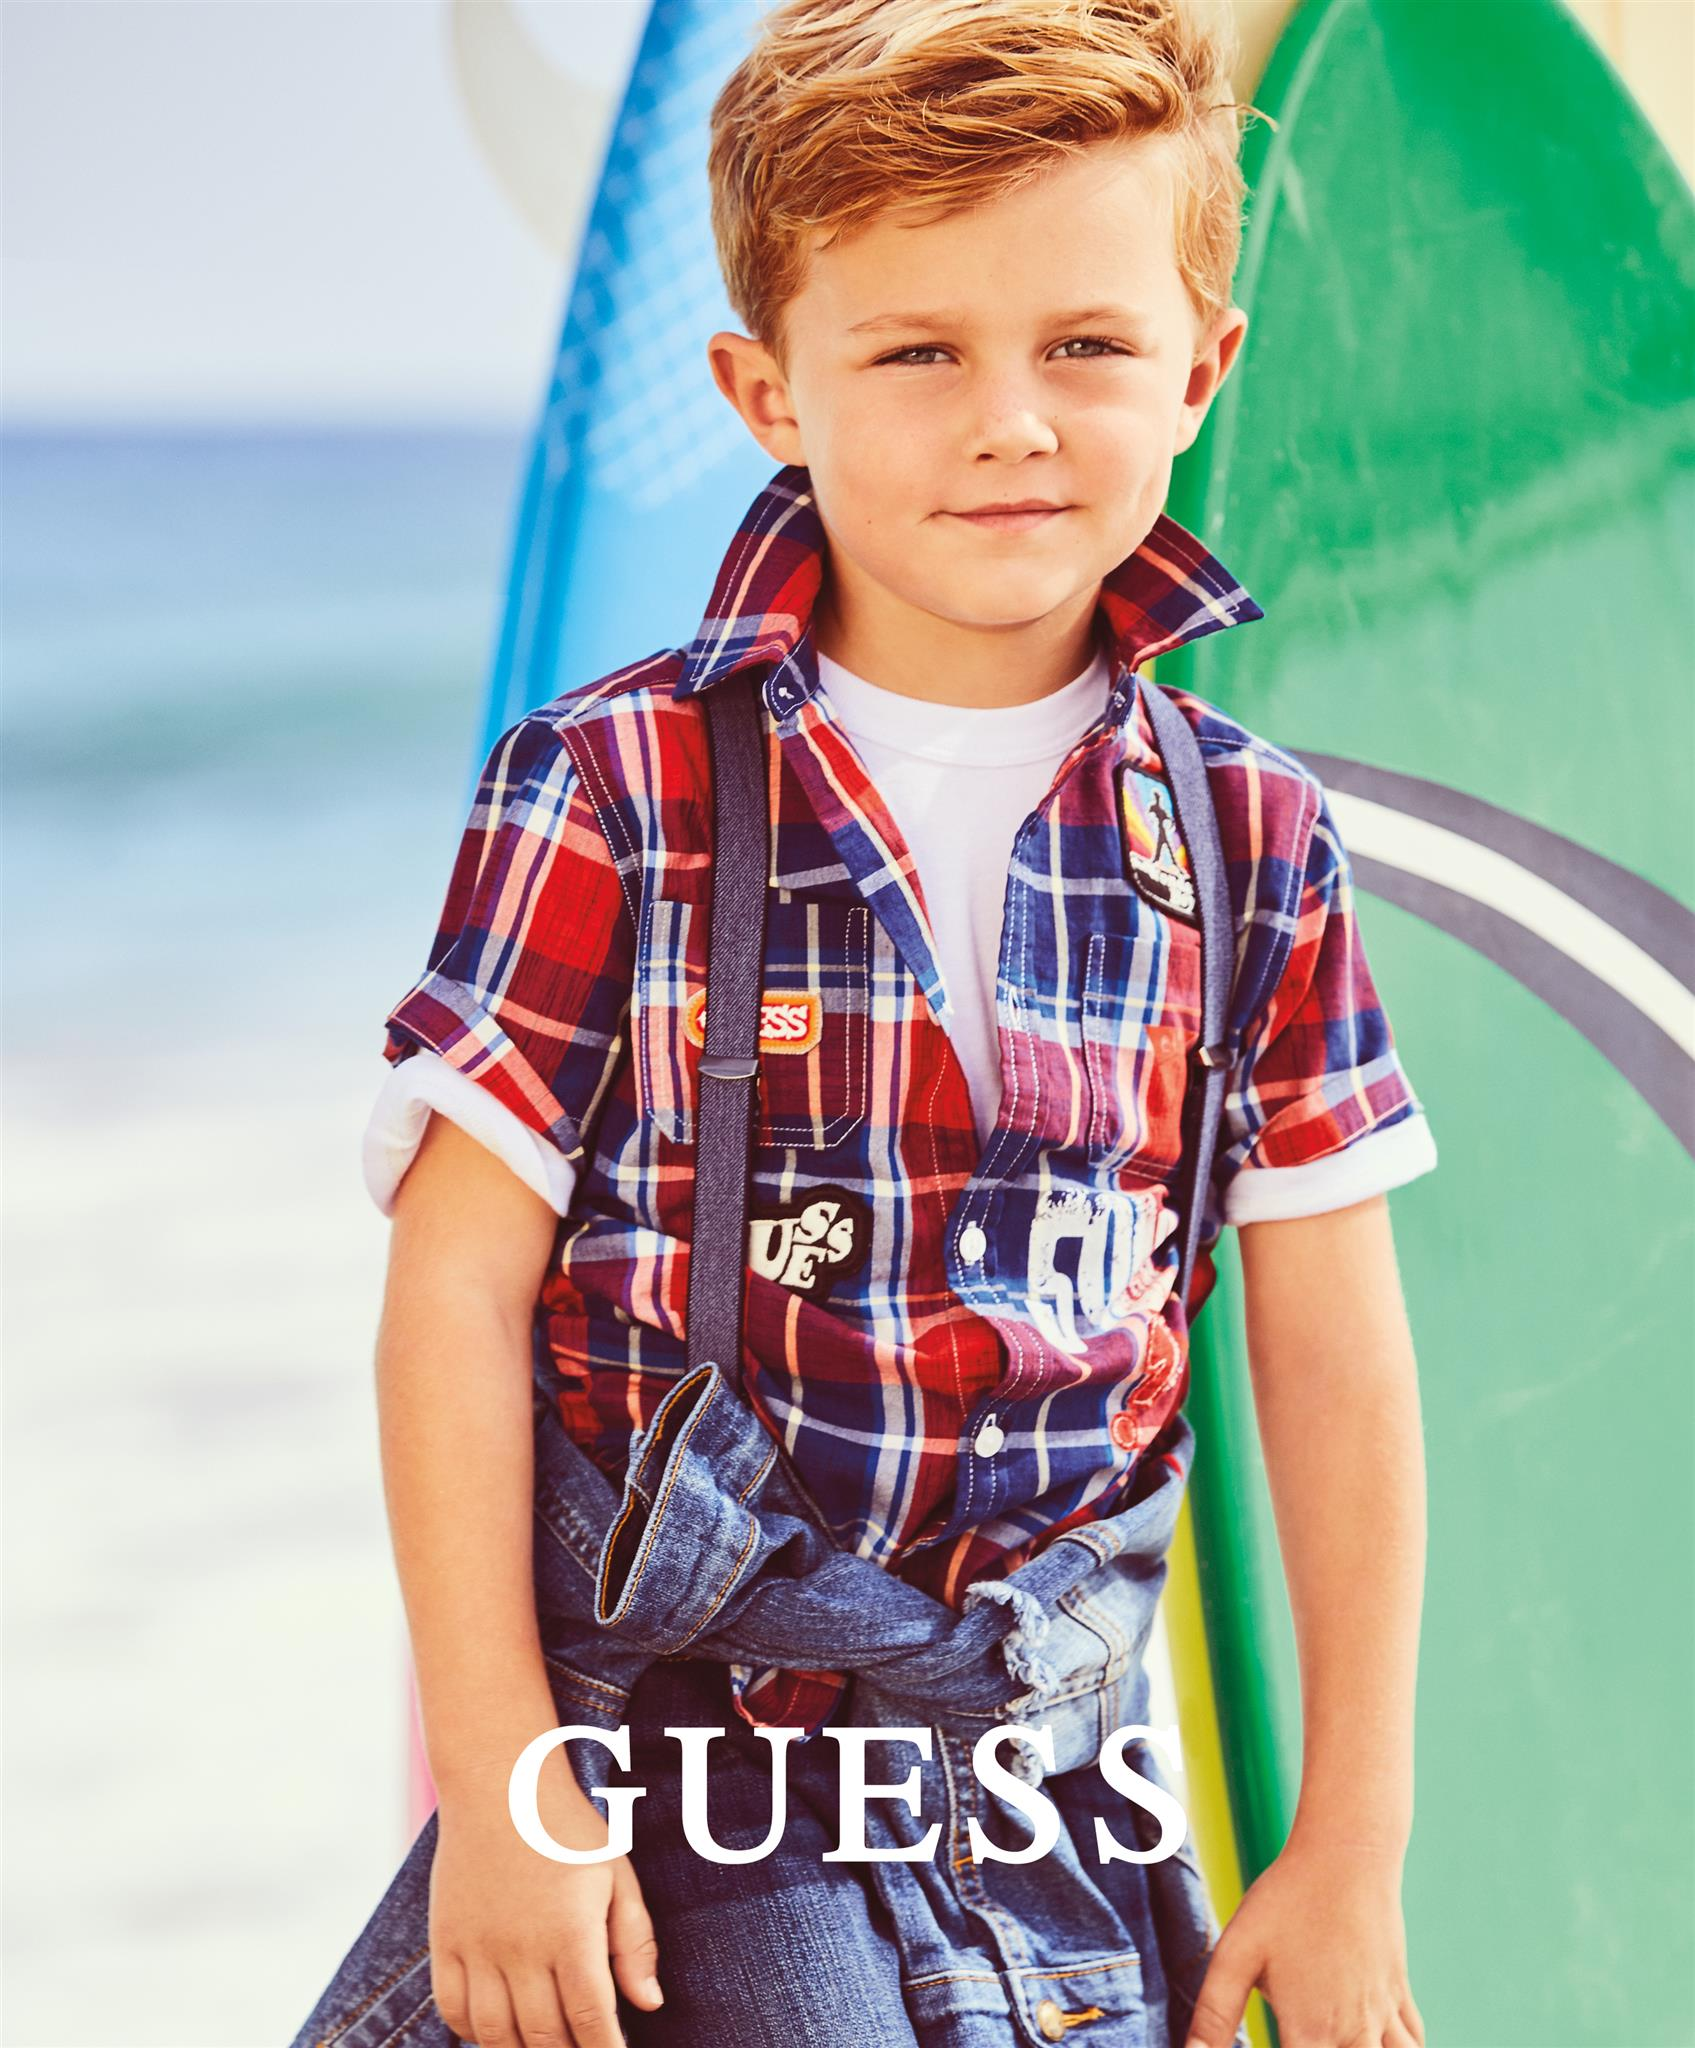 599_GUESS_Kids_Sp18_V19